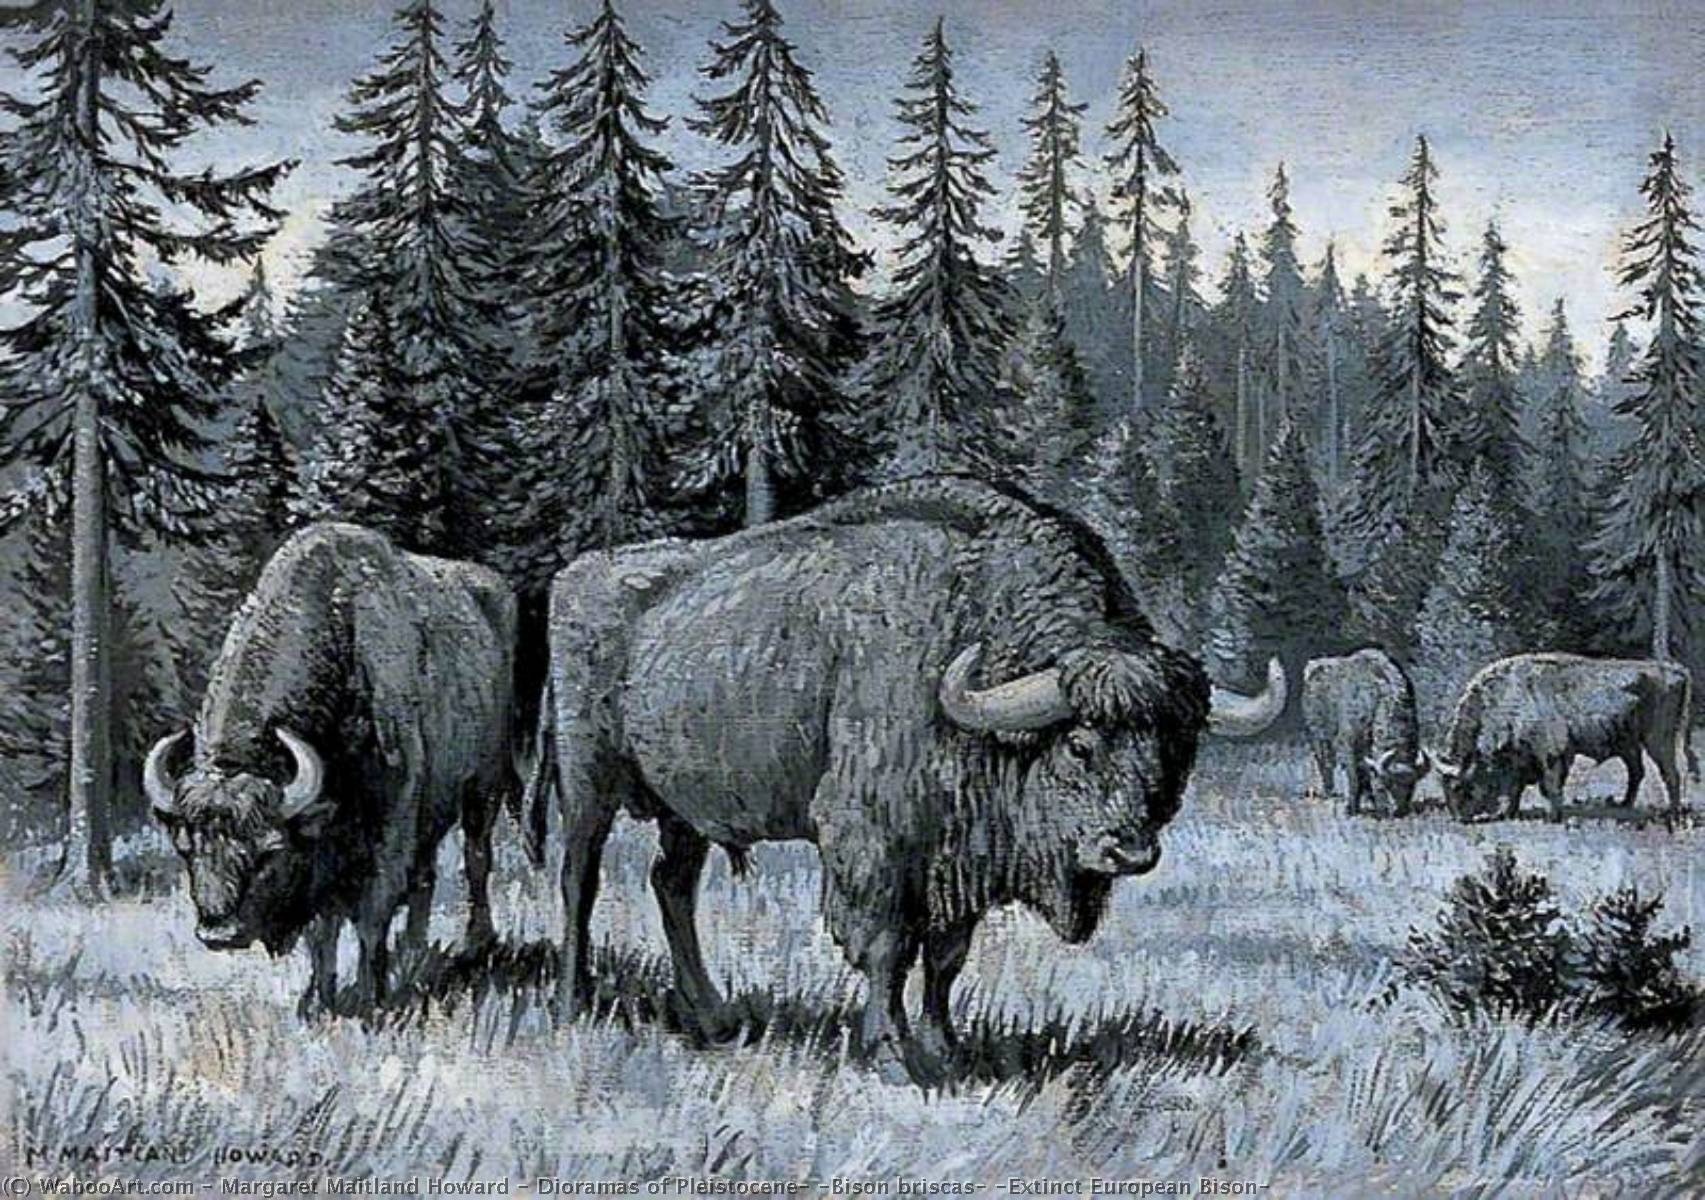 famous painting Dioramas of Pleistocene, 'Bison briscas' (Extinct European Bison) of Margaret Maitland Howard